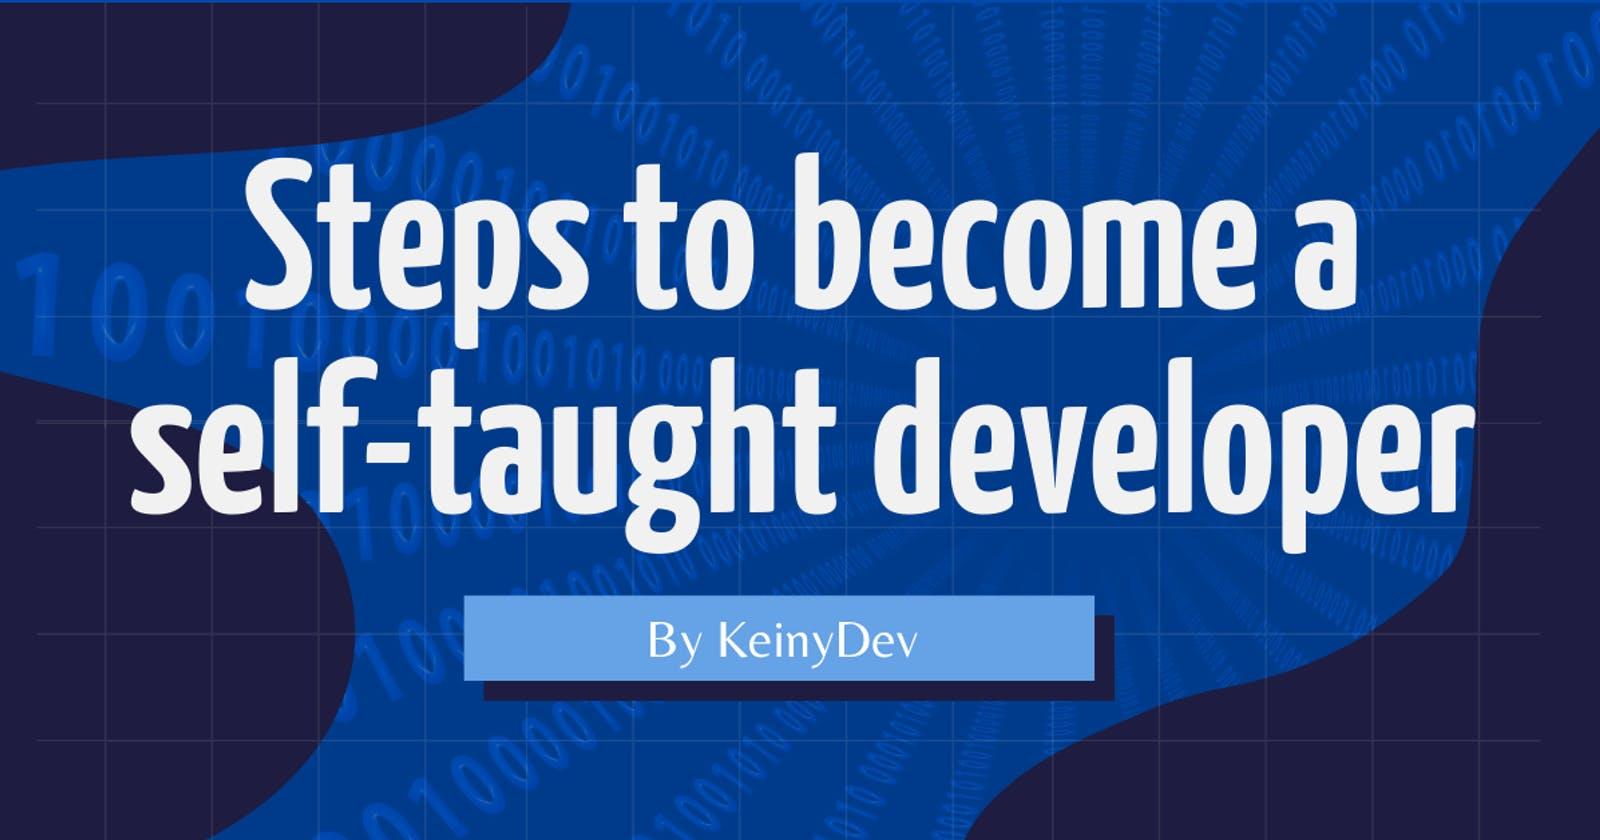 Steps to become a self-taught developer